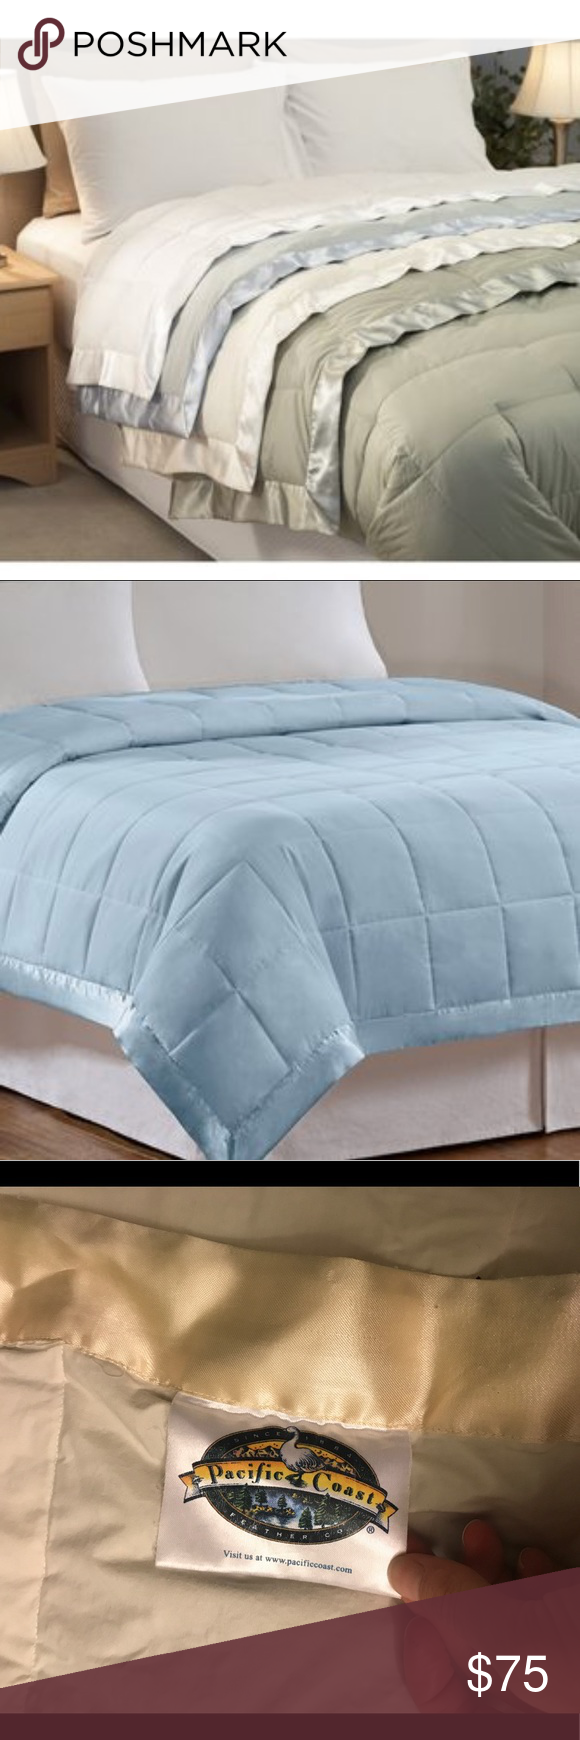 Comforter Pacific Coast Down Blanket Generously Sized